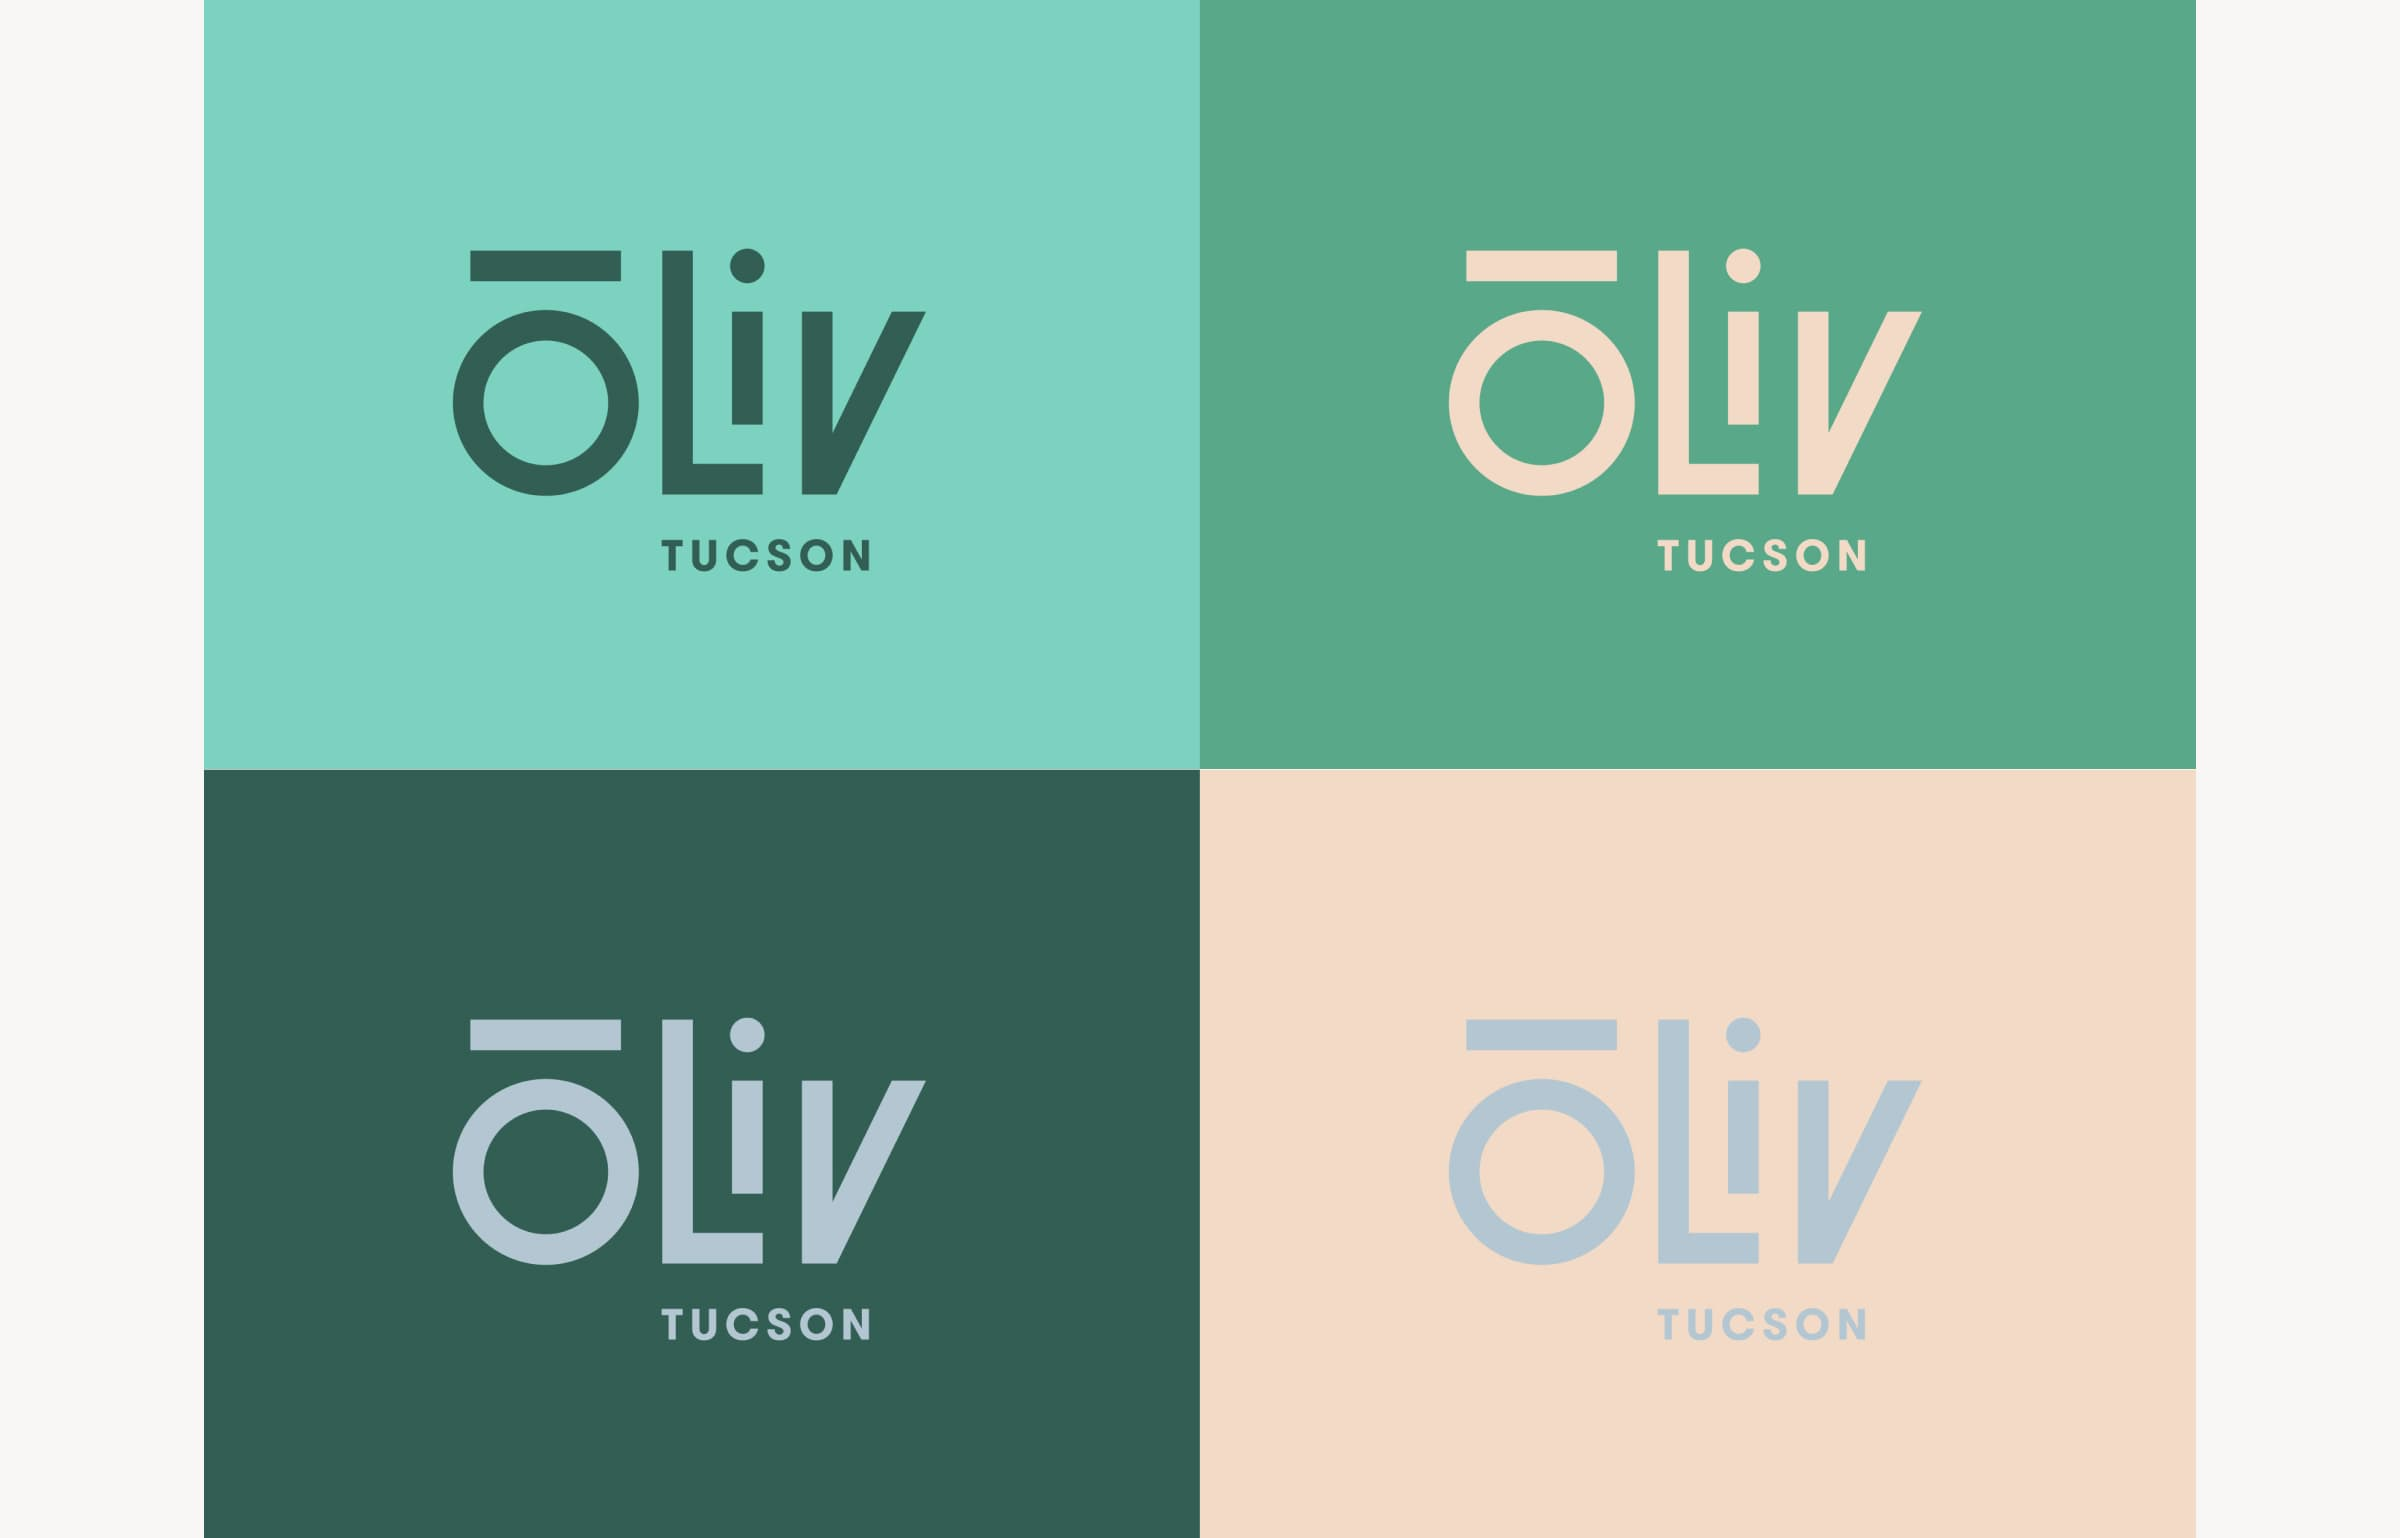 A image showing how ōLiv's logo and color scheme is localized for the Tucson, Arizona property.